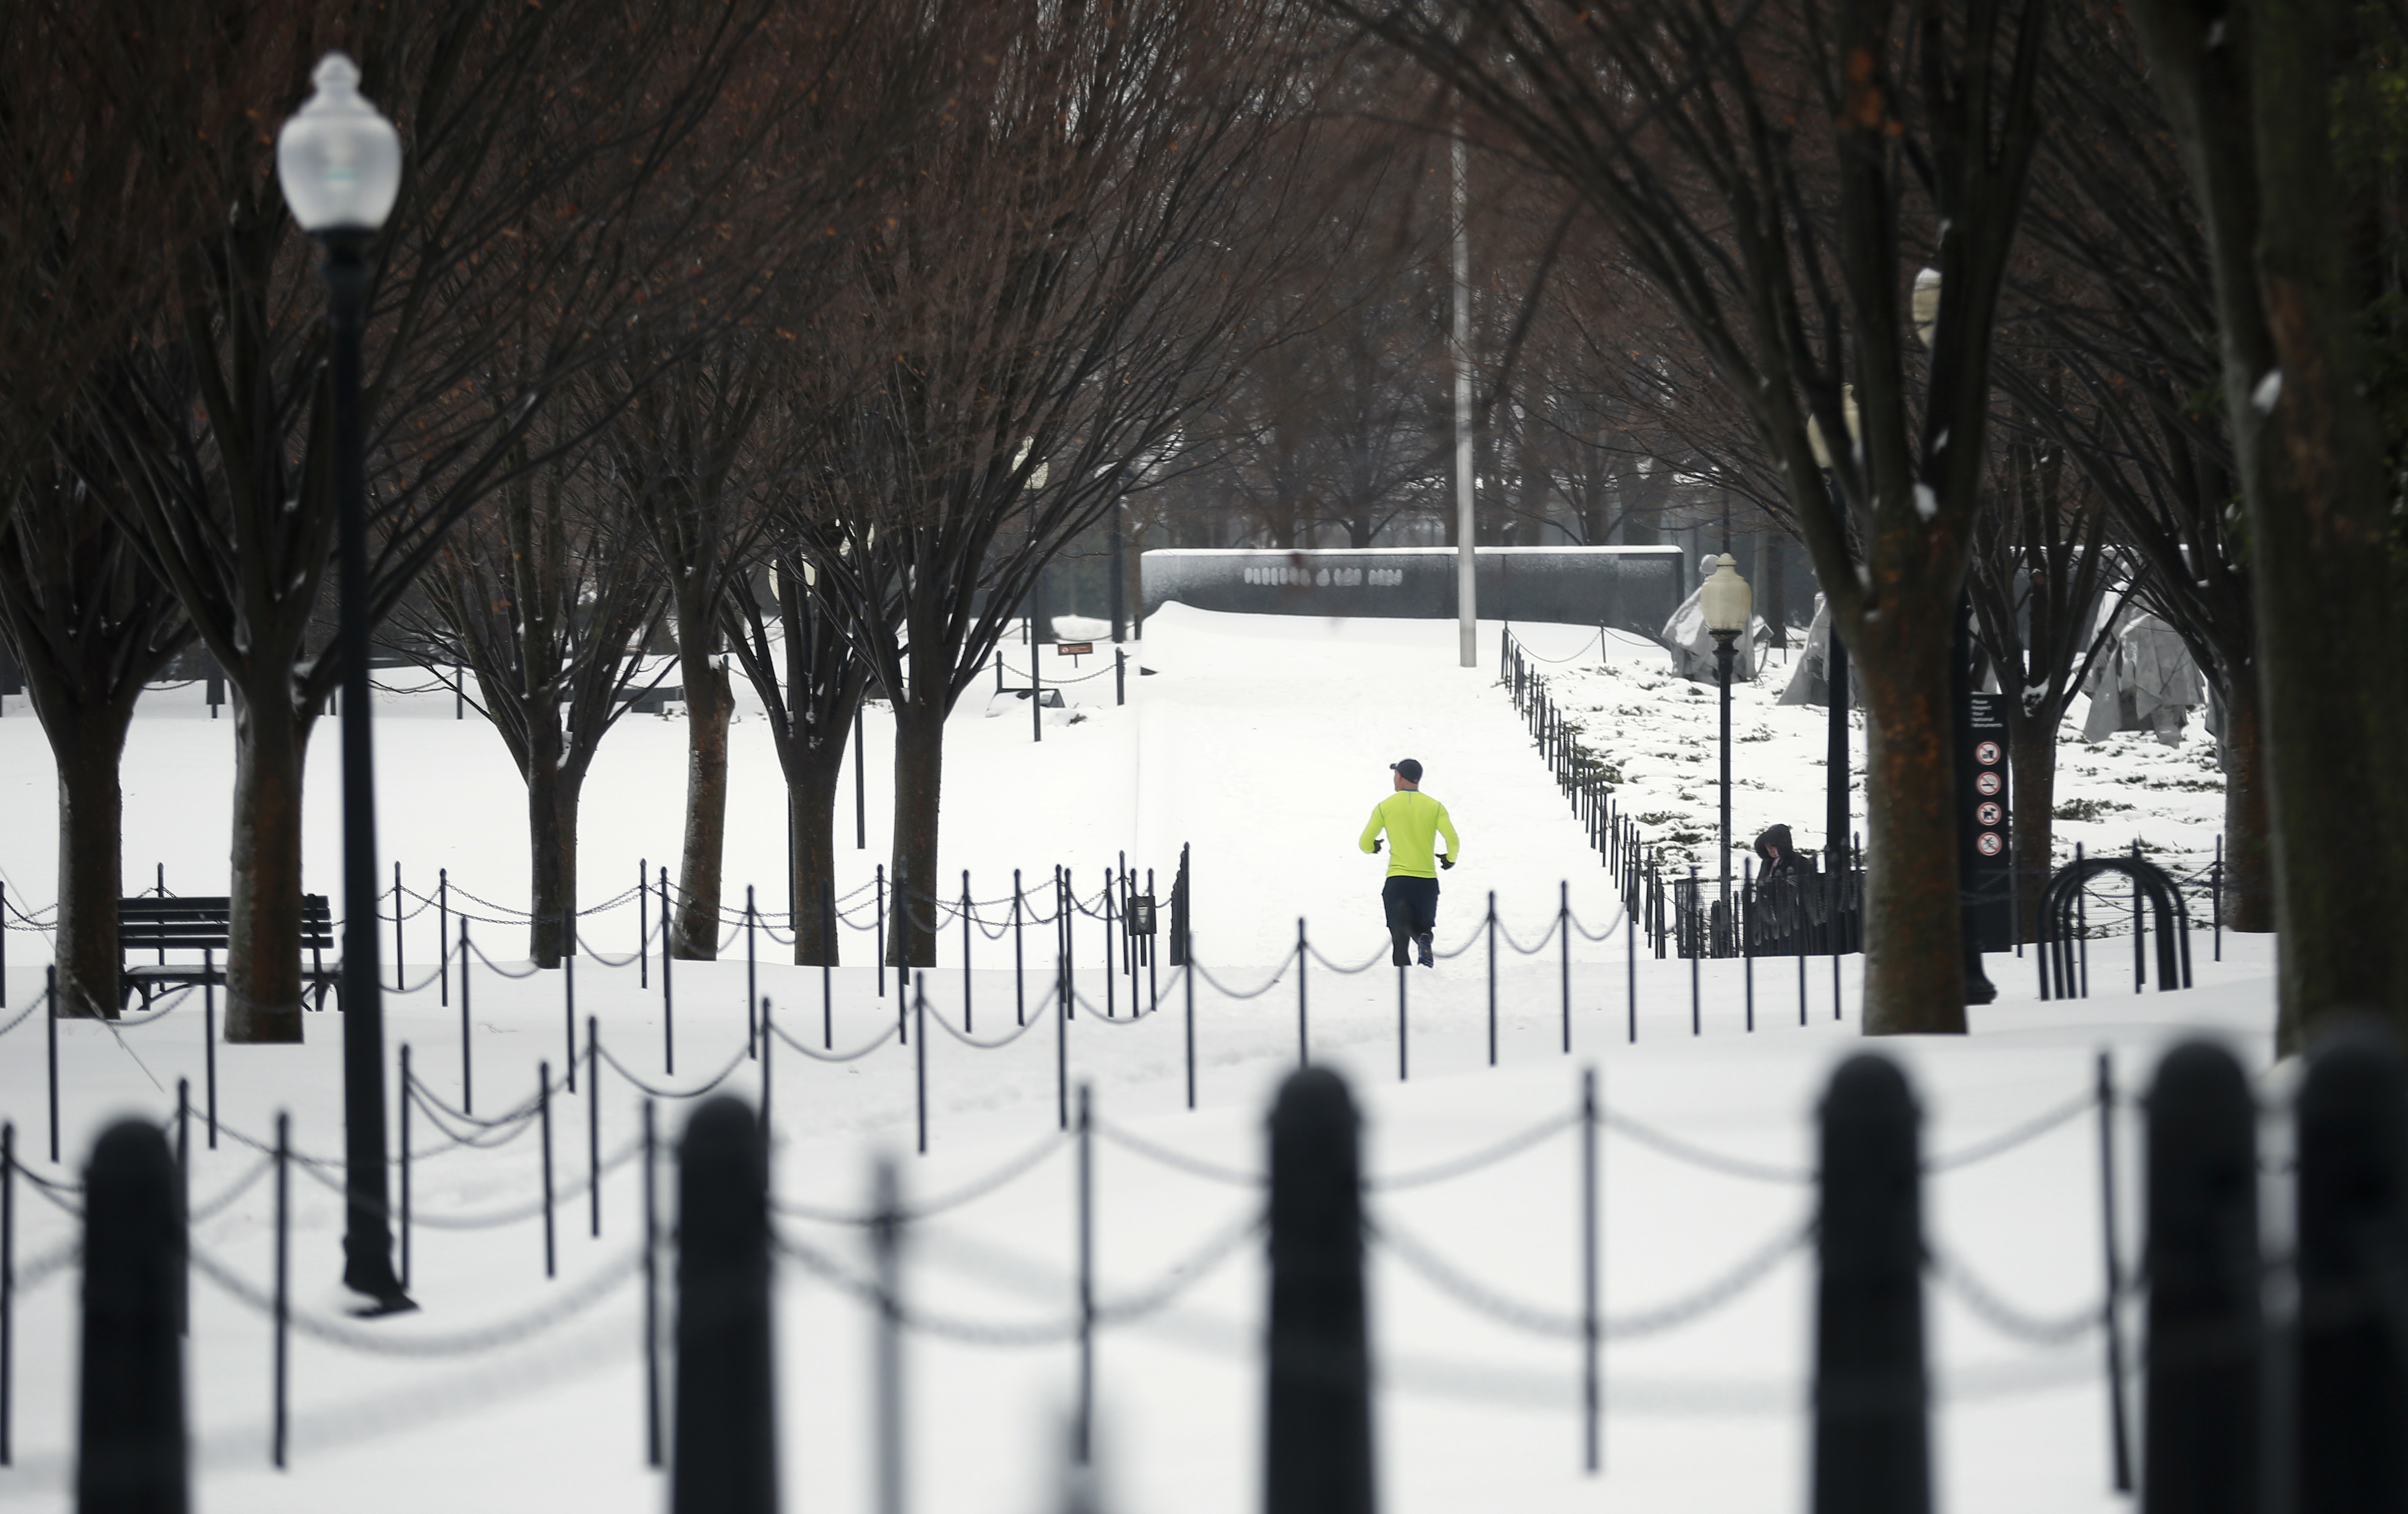 A jogger makes his way through the snow on the National Mall in Washington on February 13, 2014.